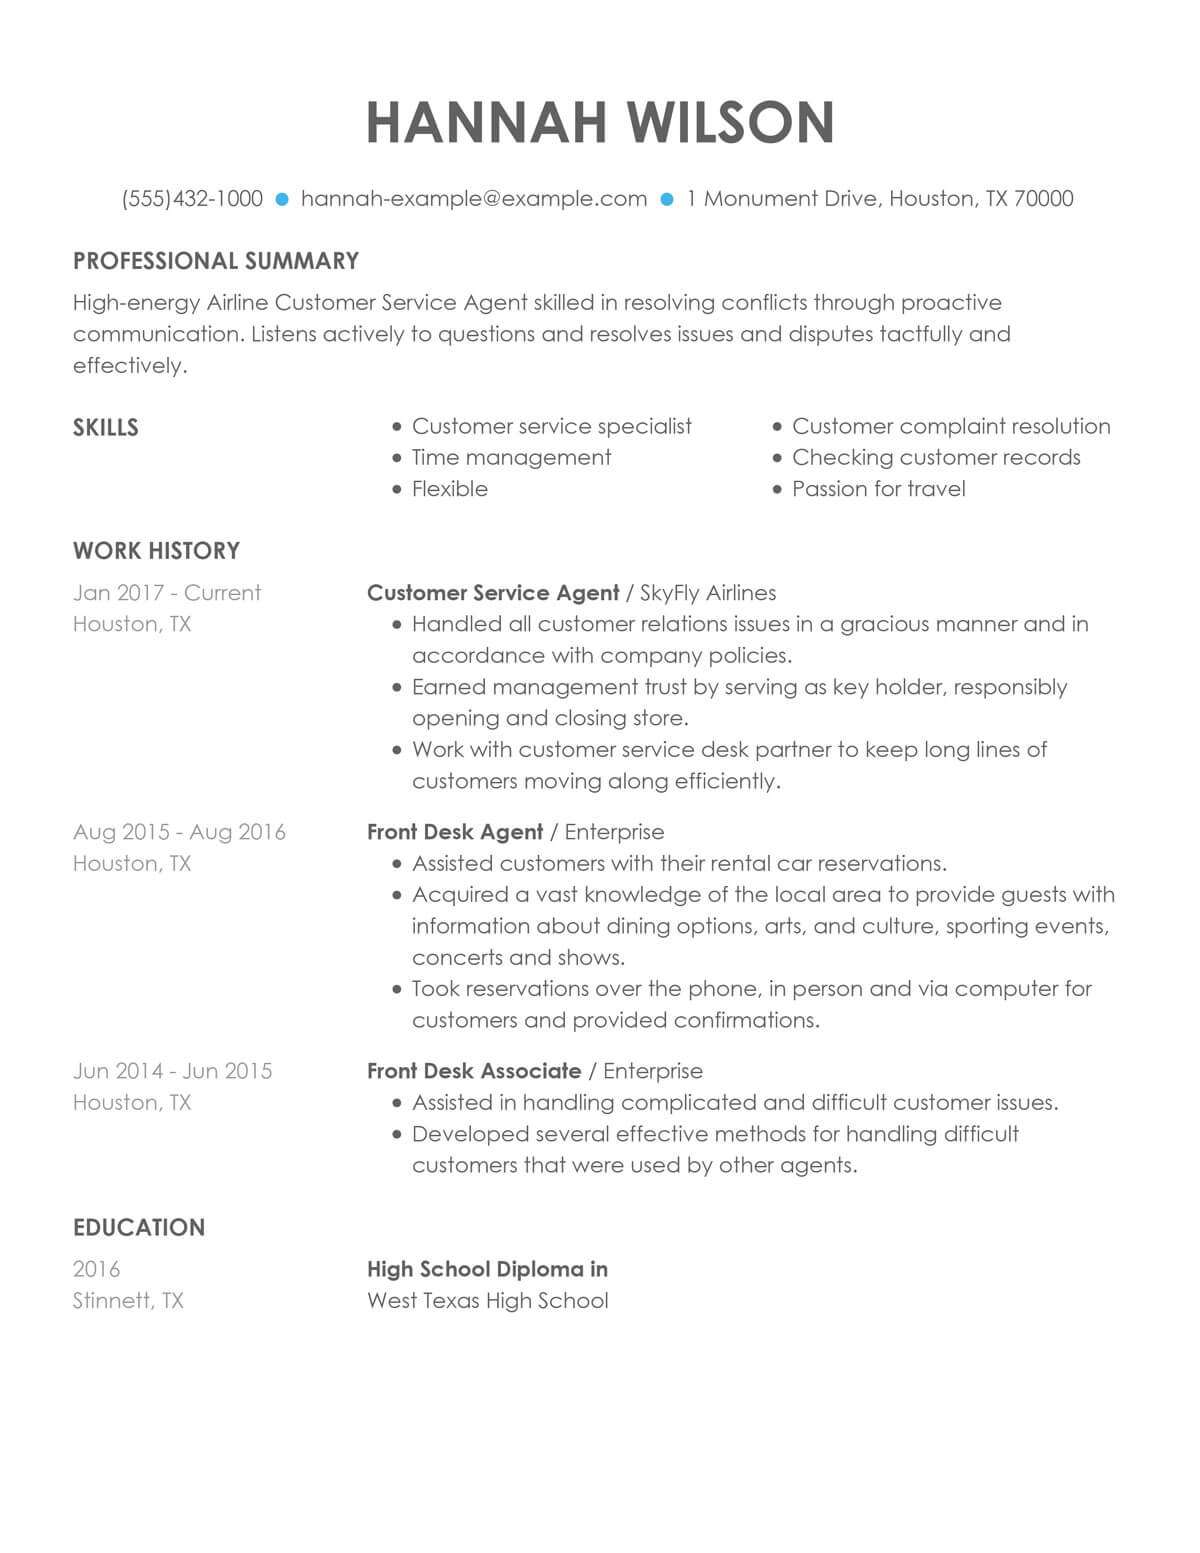 customize our customer representative resume example service duties for airline agent Resume Customer Service Duties For Resume